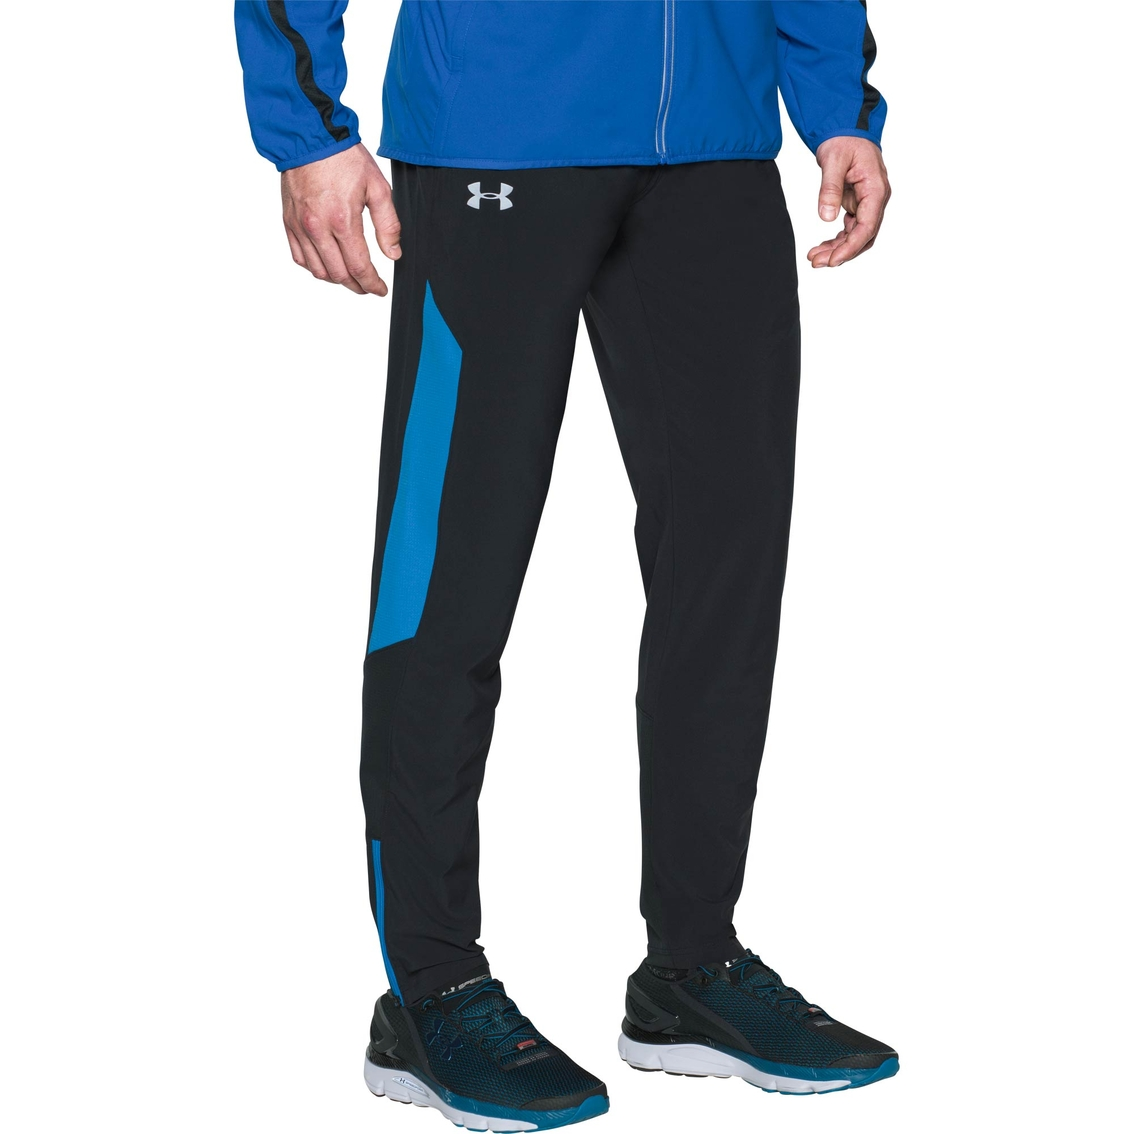 detailed pictures badcd 0406b Under Armour UA NoBreaks Stretch Woven Run Pants